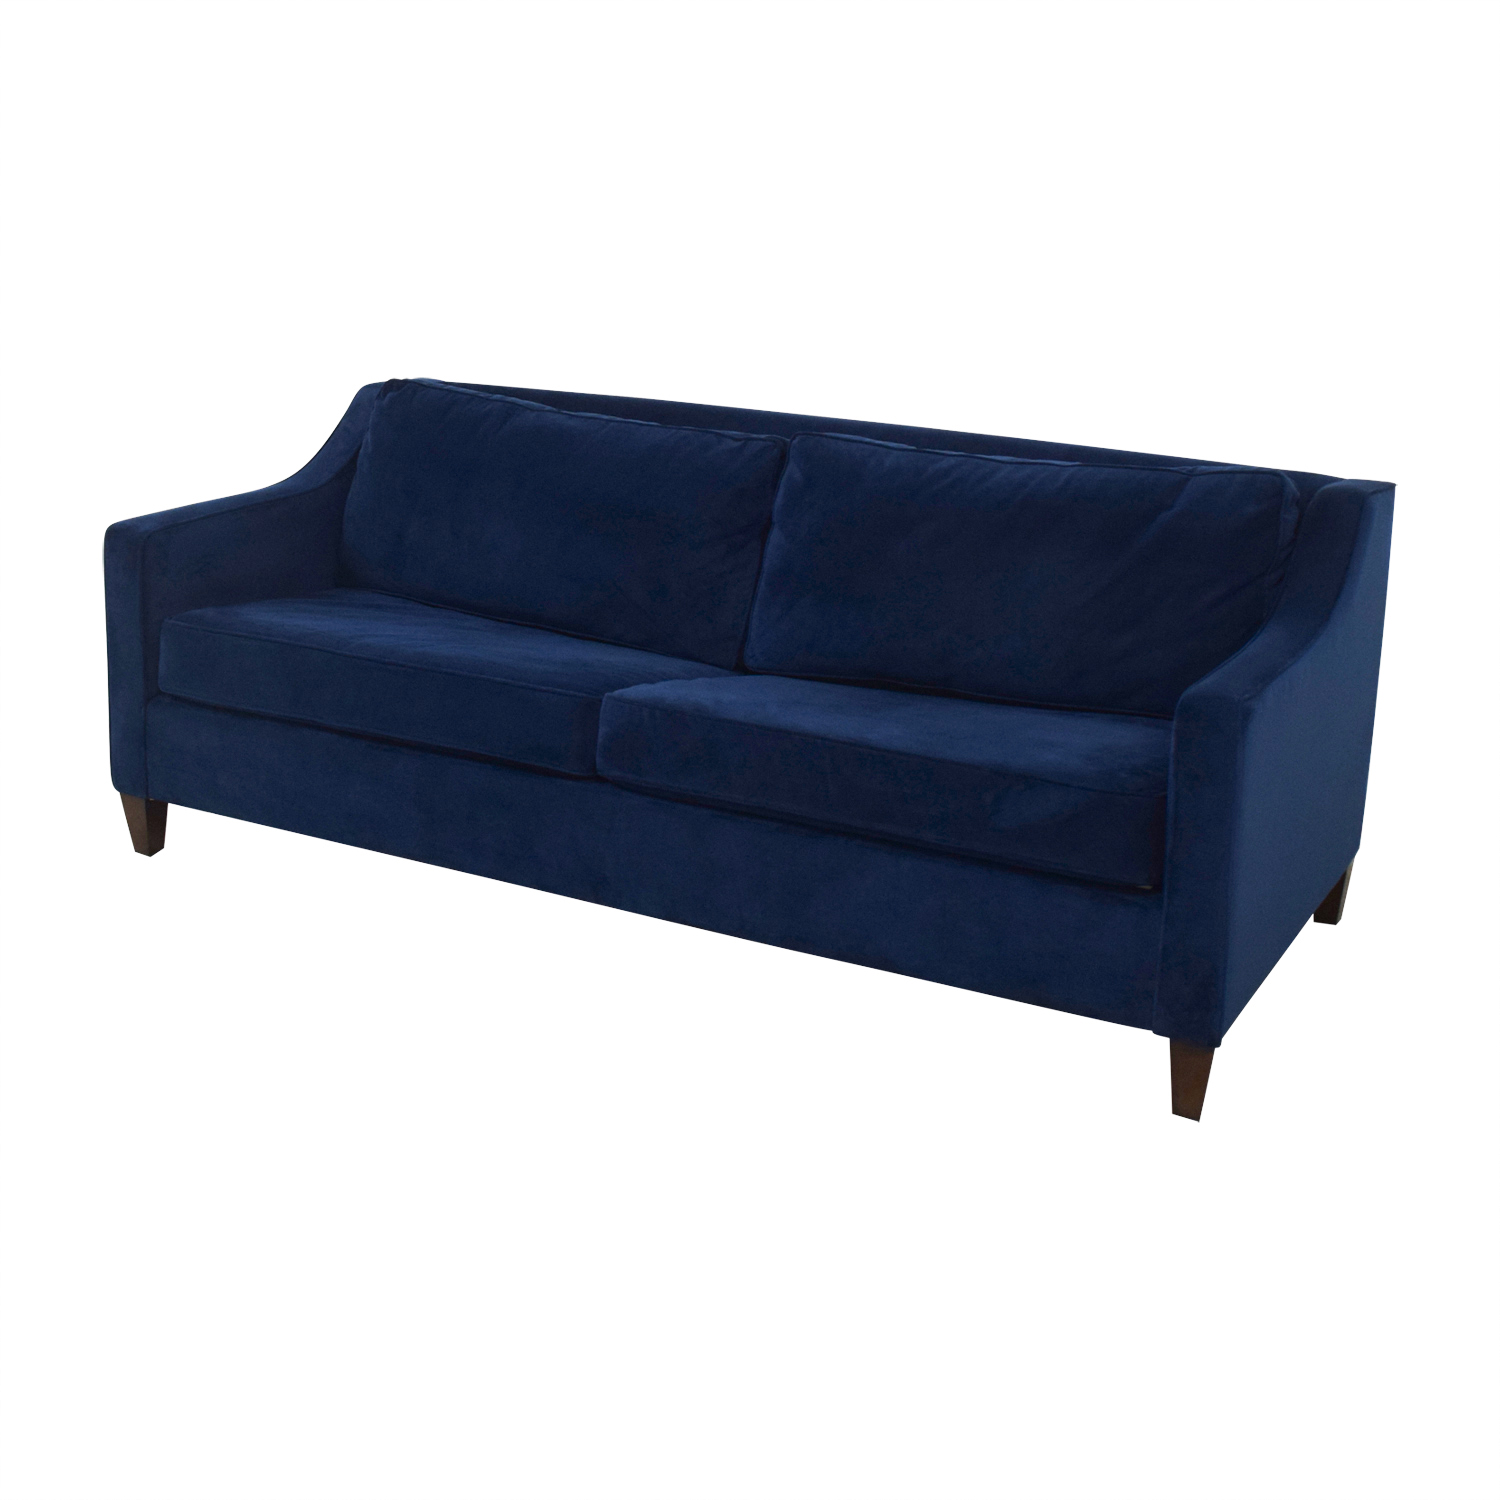 West Elm West Elm Paidge Queen Sleeper Sofa coupon